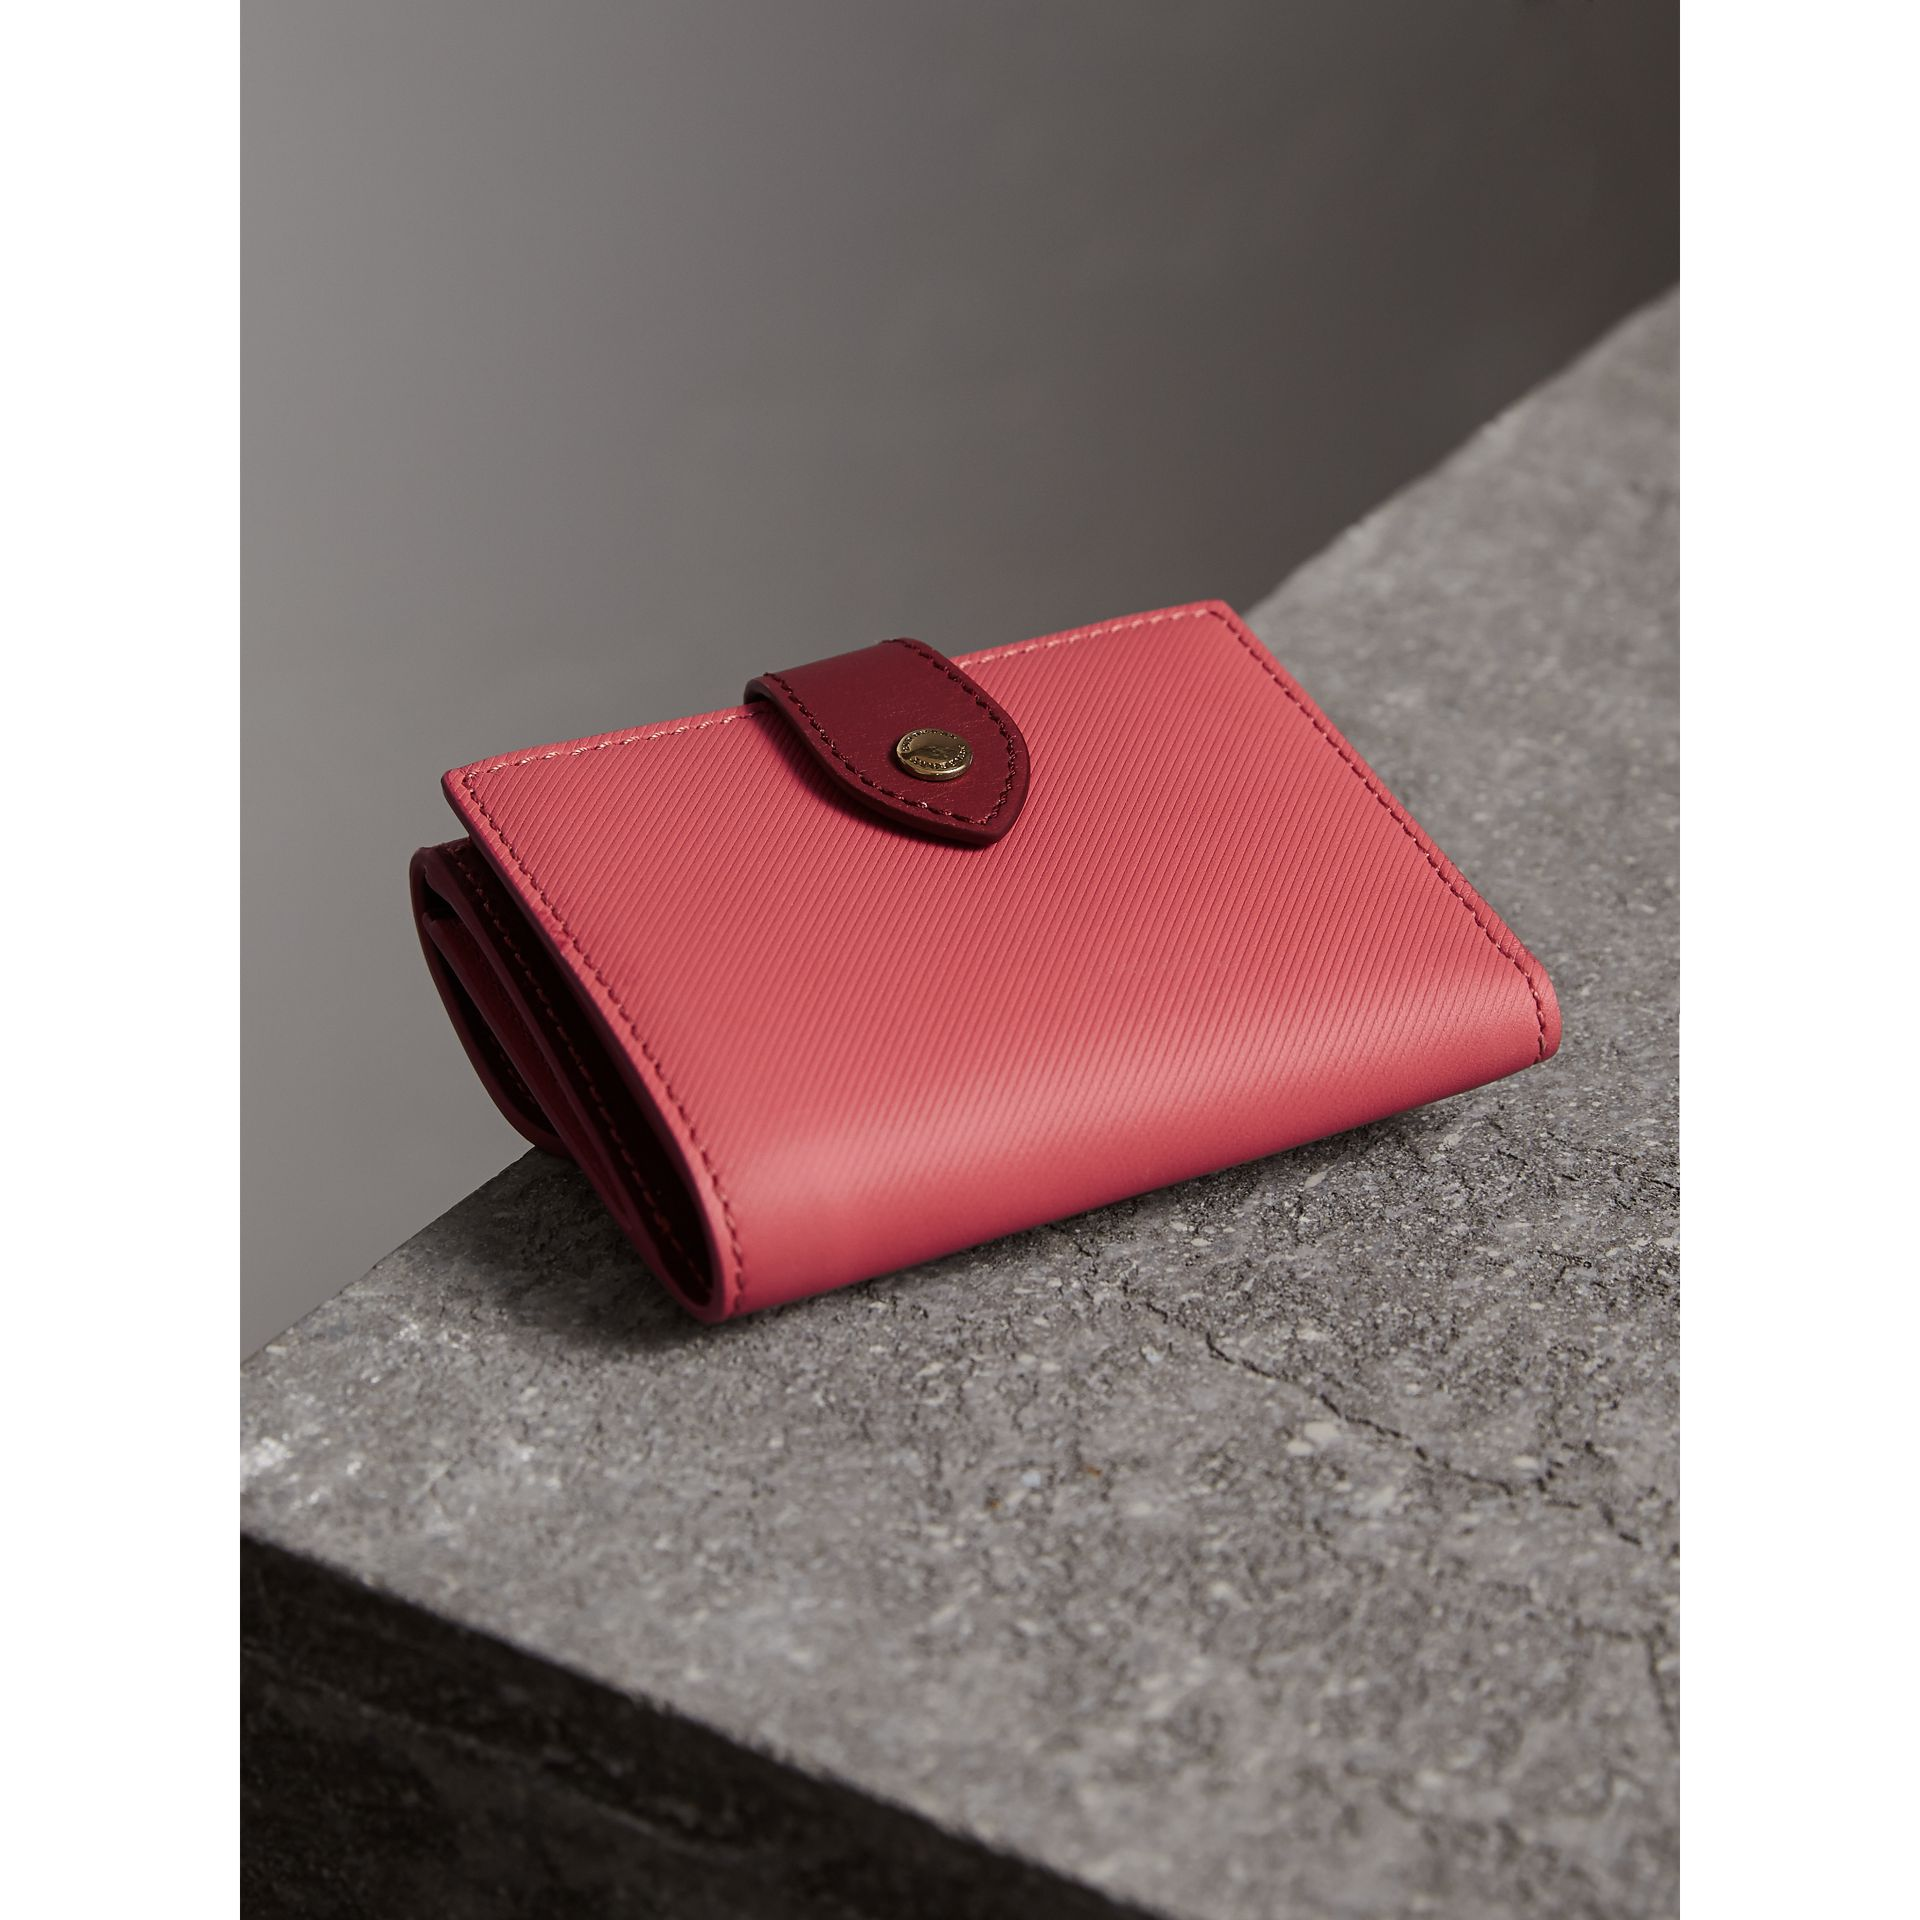 Two-tone Trench Leather Wallet in Blossom Pink/ Antique Red - Women | Burberry Canada - gallery image 3